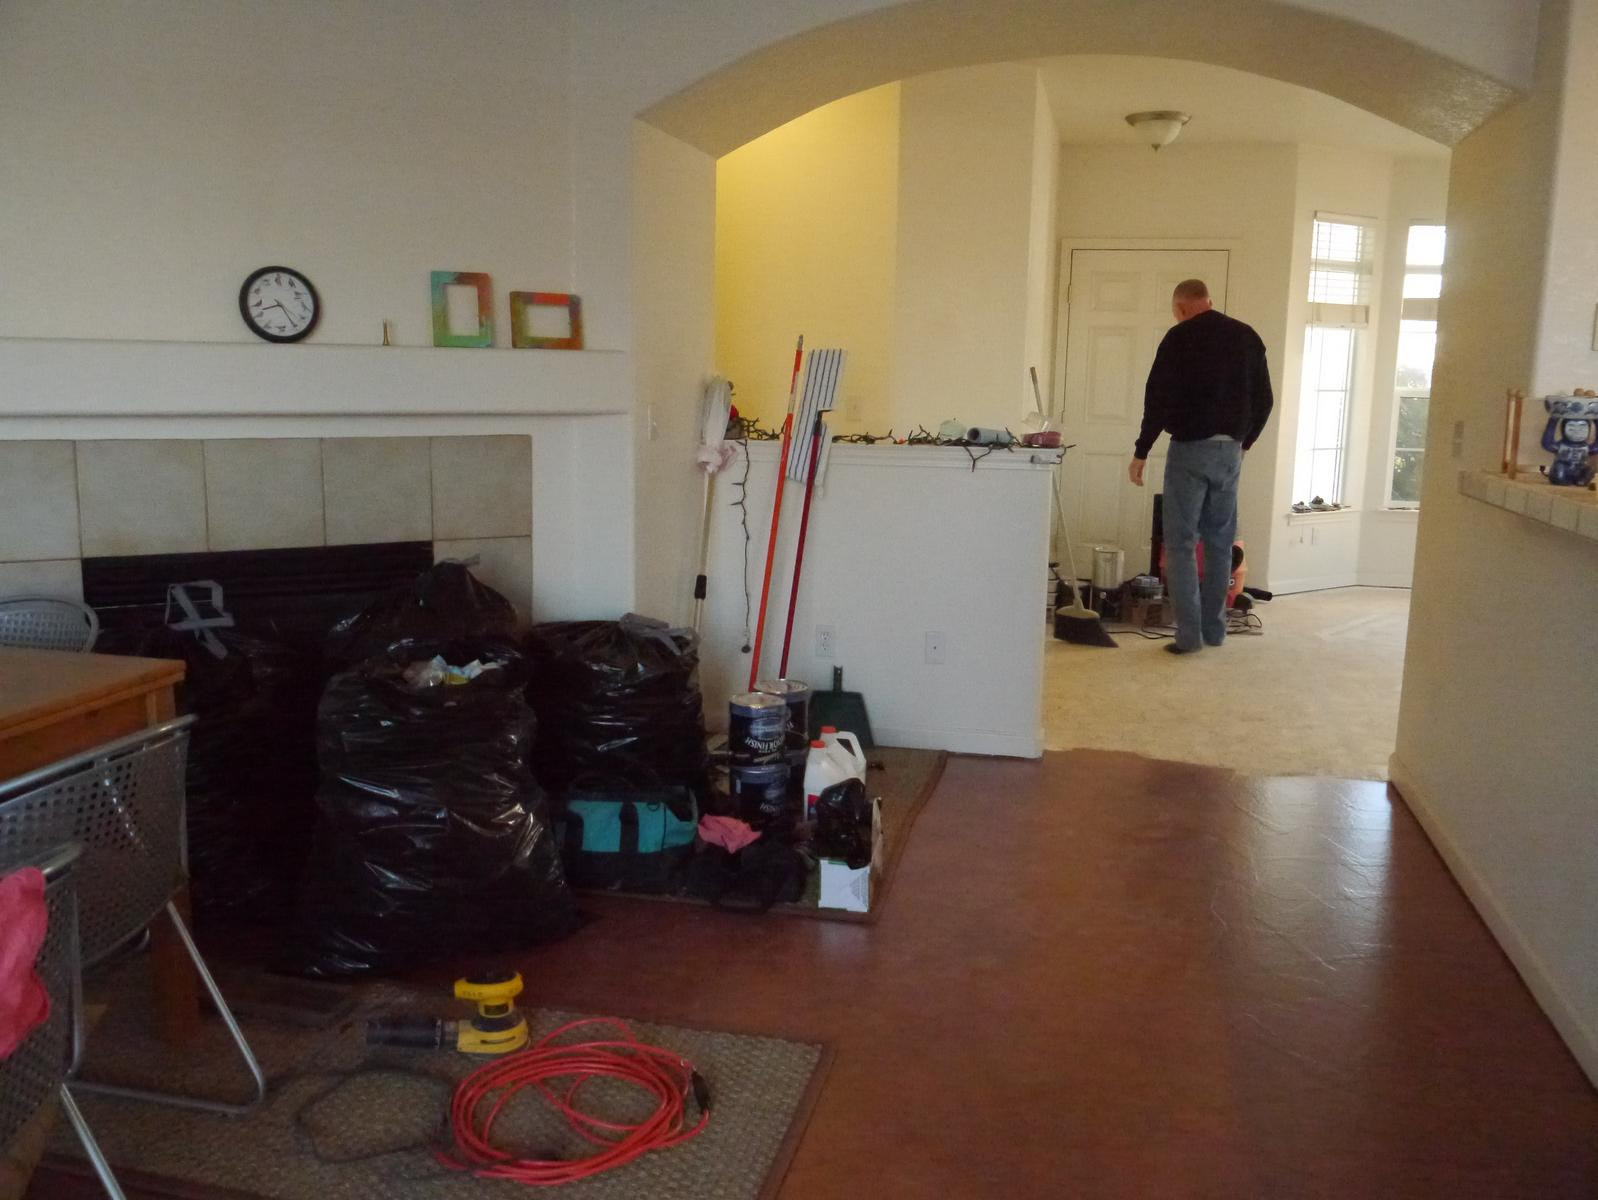 Redoing Kitchen Floor Do U Have To Raise The Cabinets